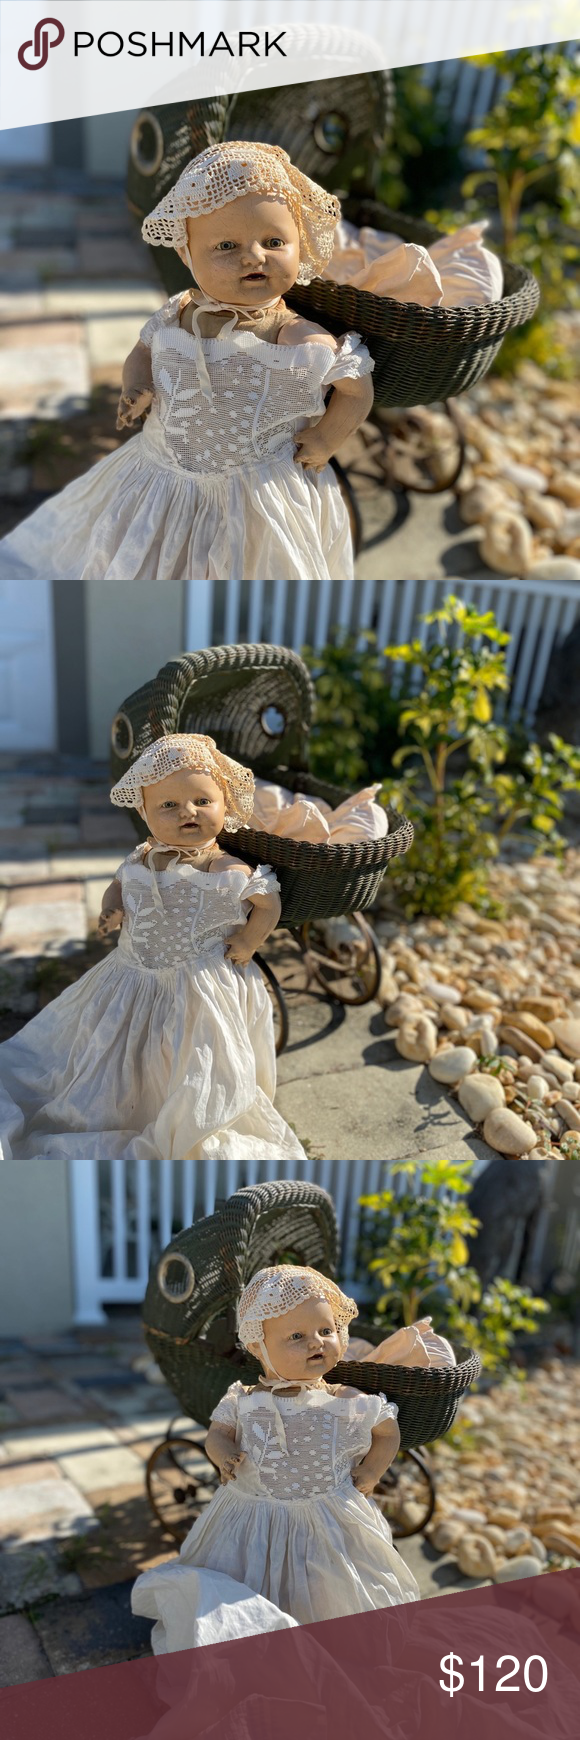 Antique victorian baby doll with pram Excellent condition Other #dollvictoriandressstyles Antique victorian baby doll with pram Excellent condition Other #dollvictoriandressstyles